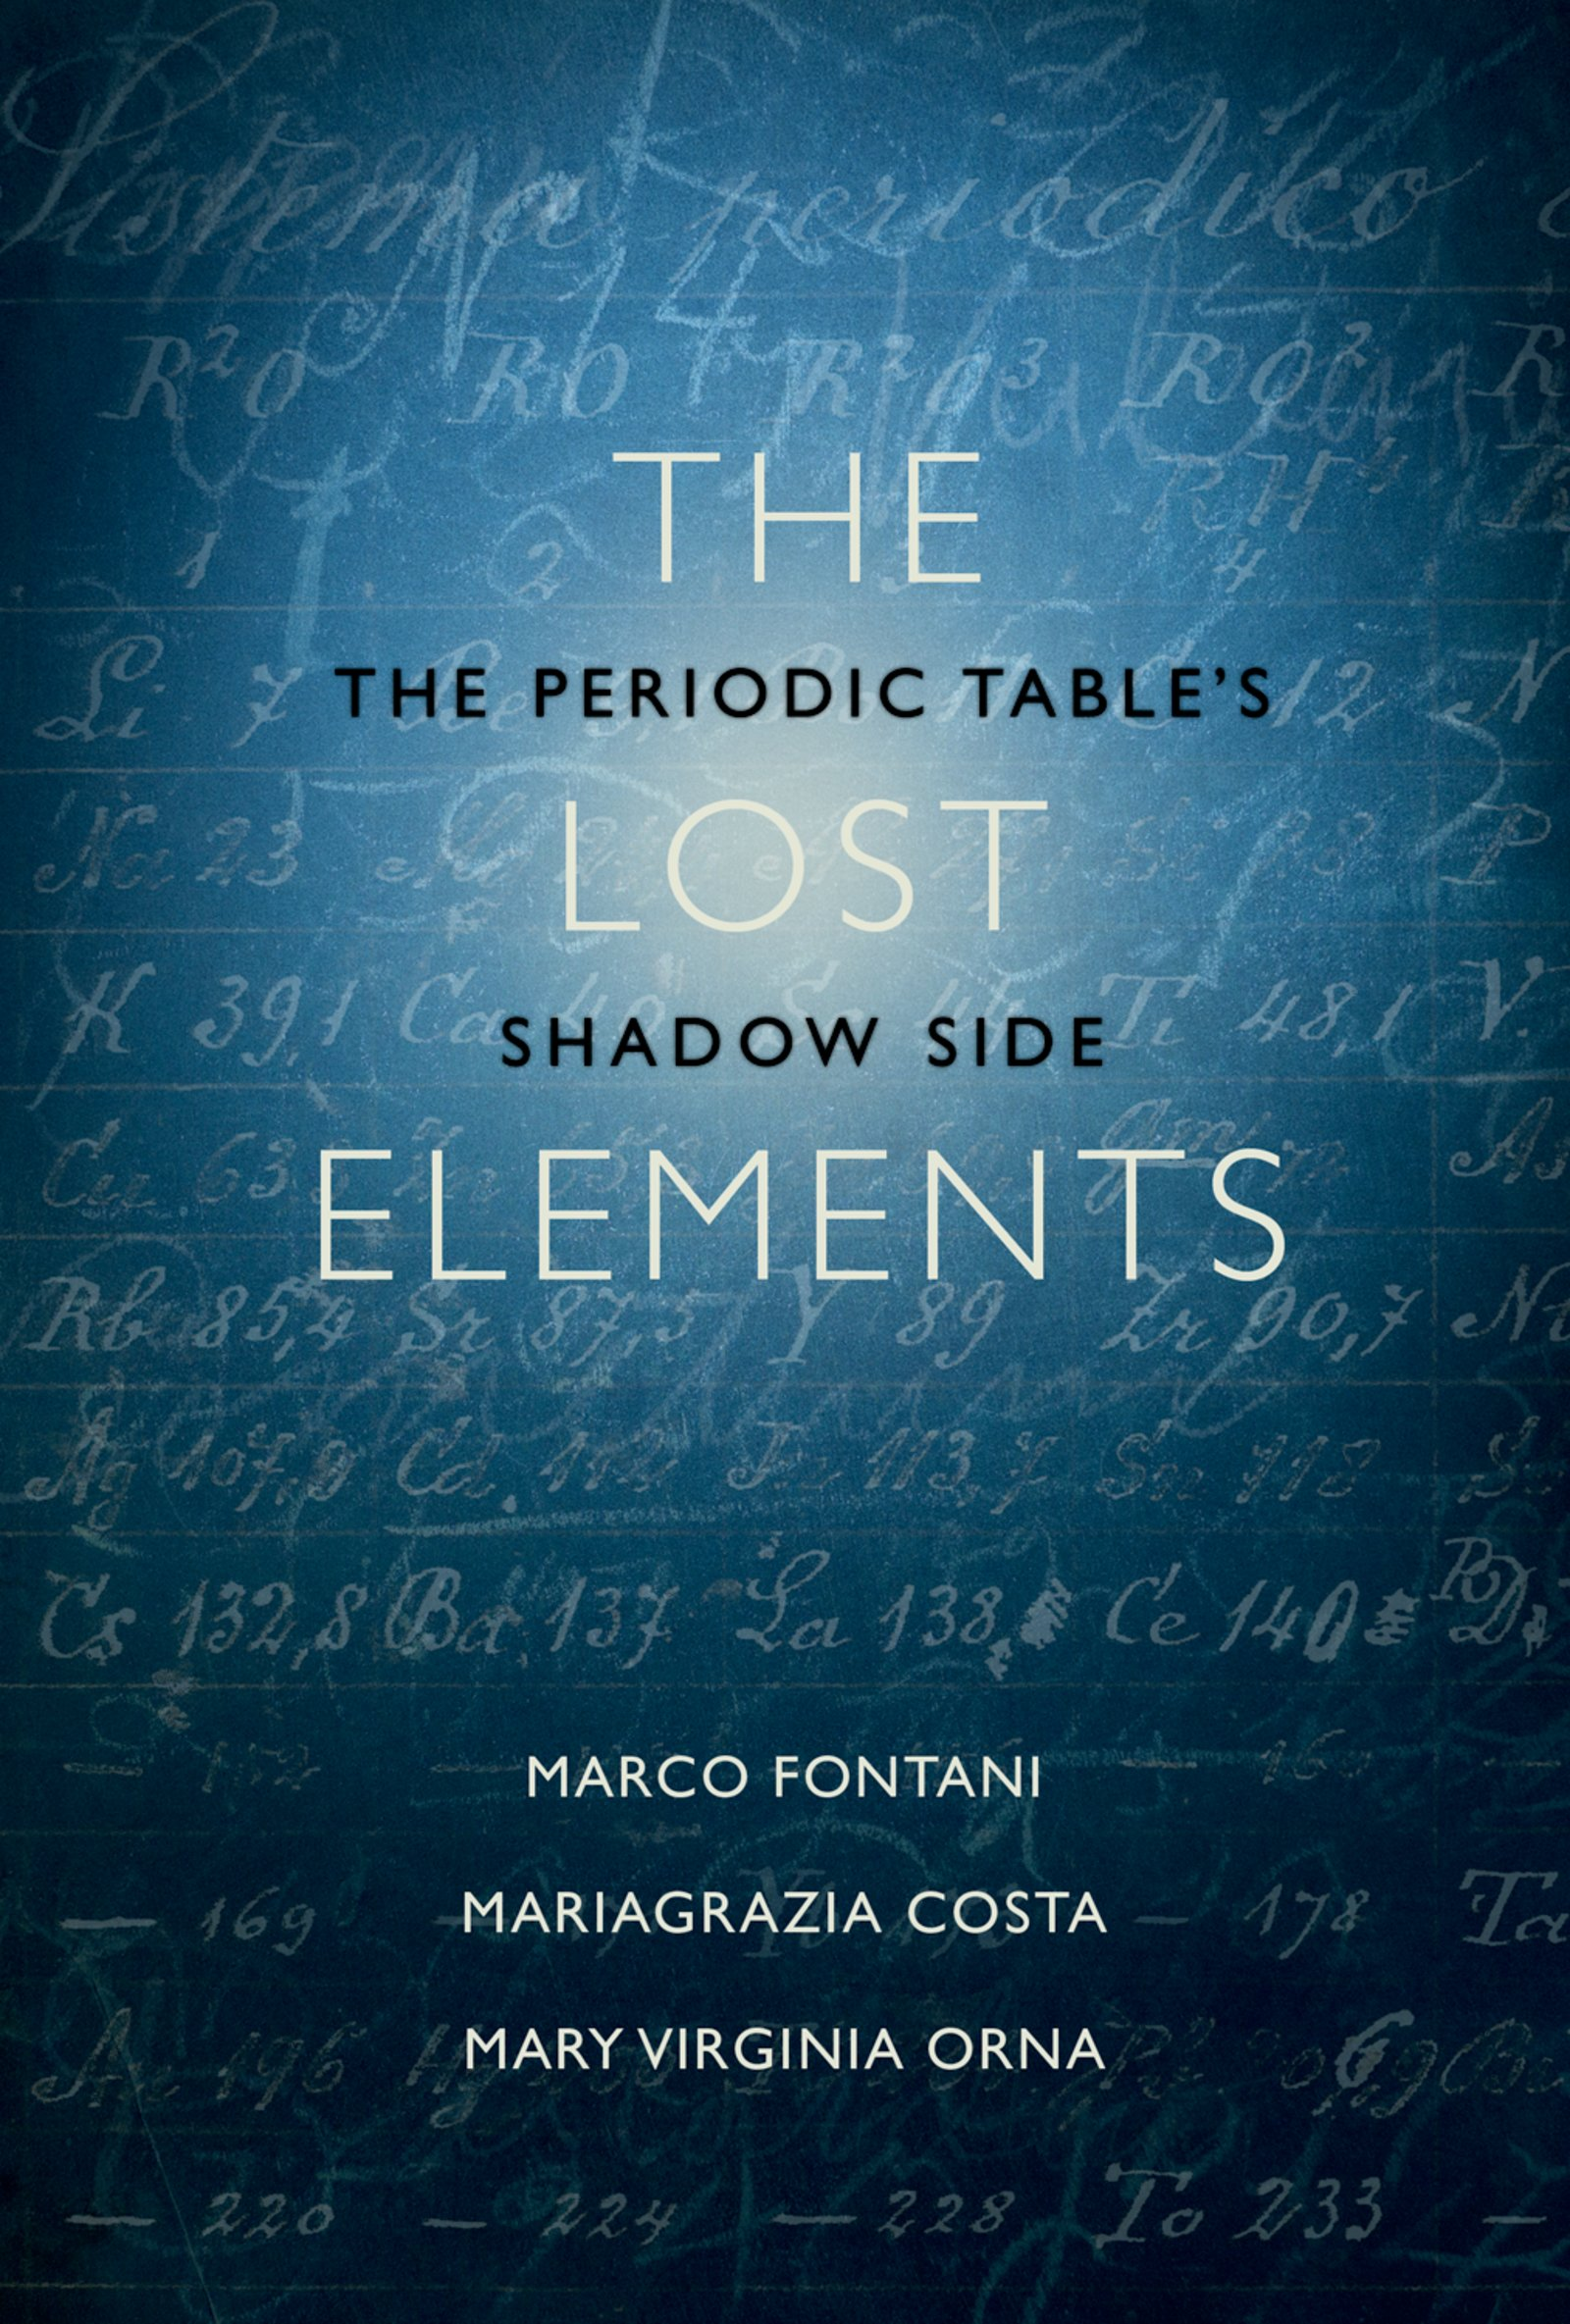 The Lost ElementsThe Periodic Table's Shadow Side